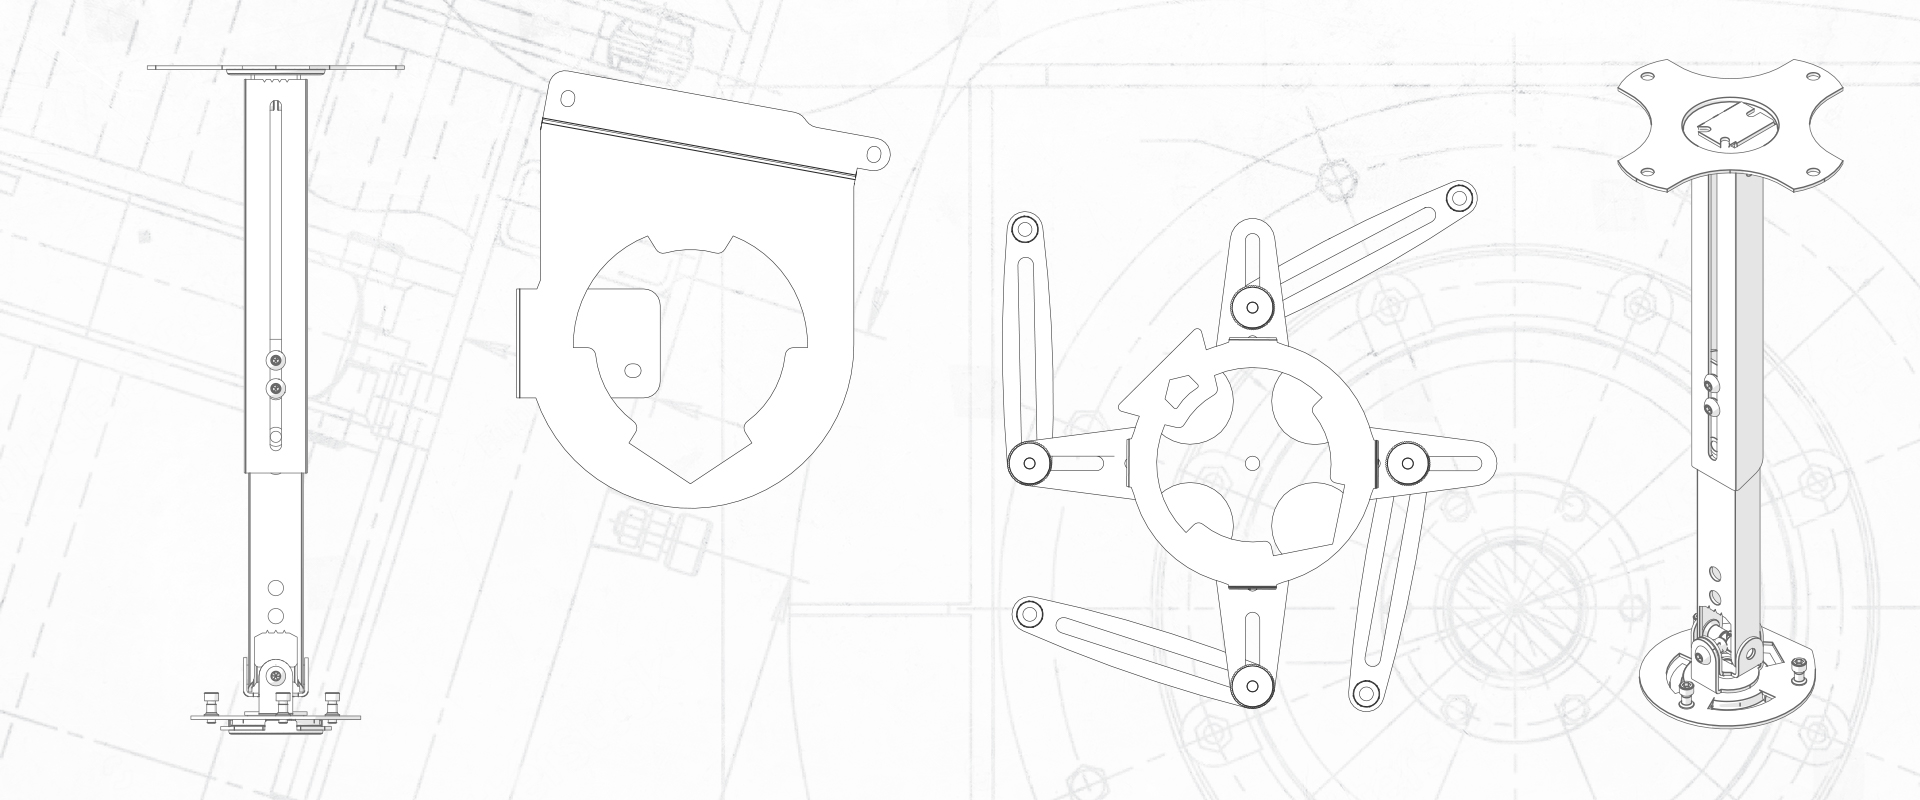 GYROLOCK | THE GUIDE TO PROJECTOR SUSPENSION